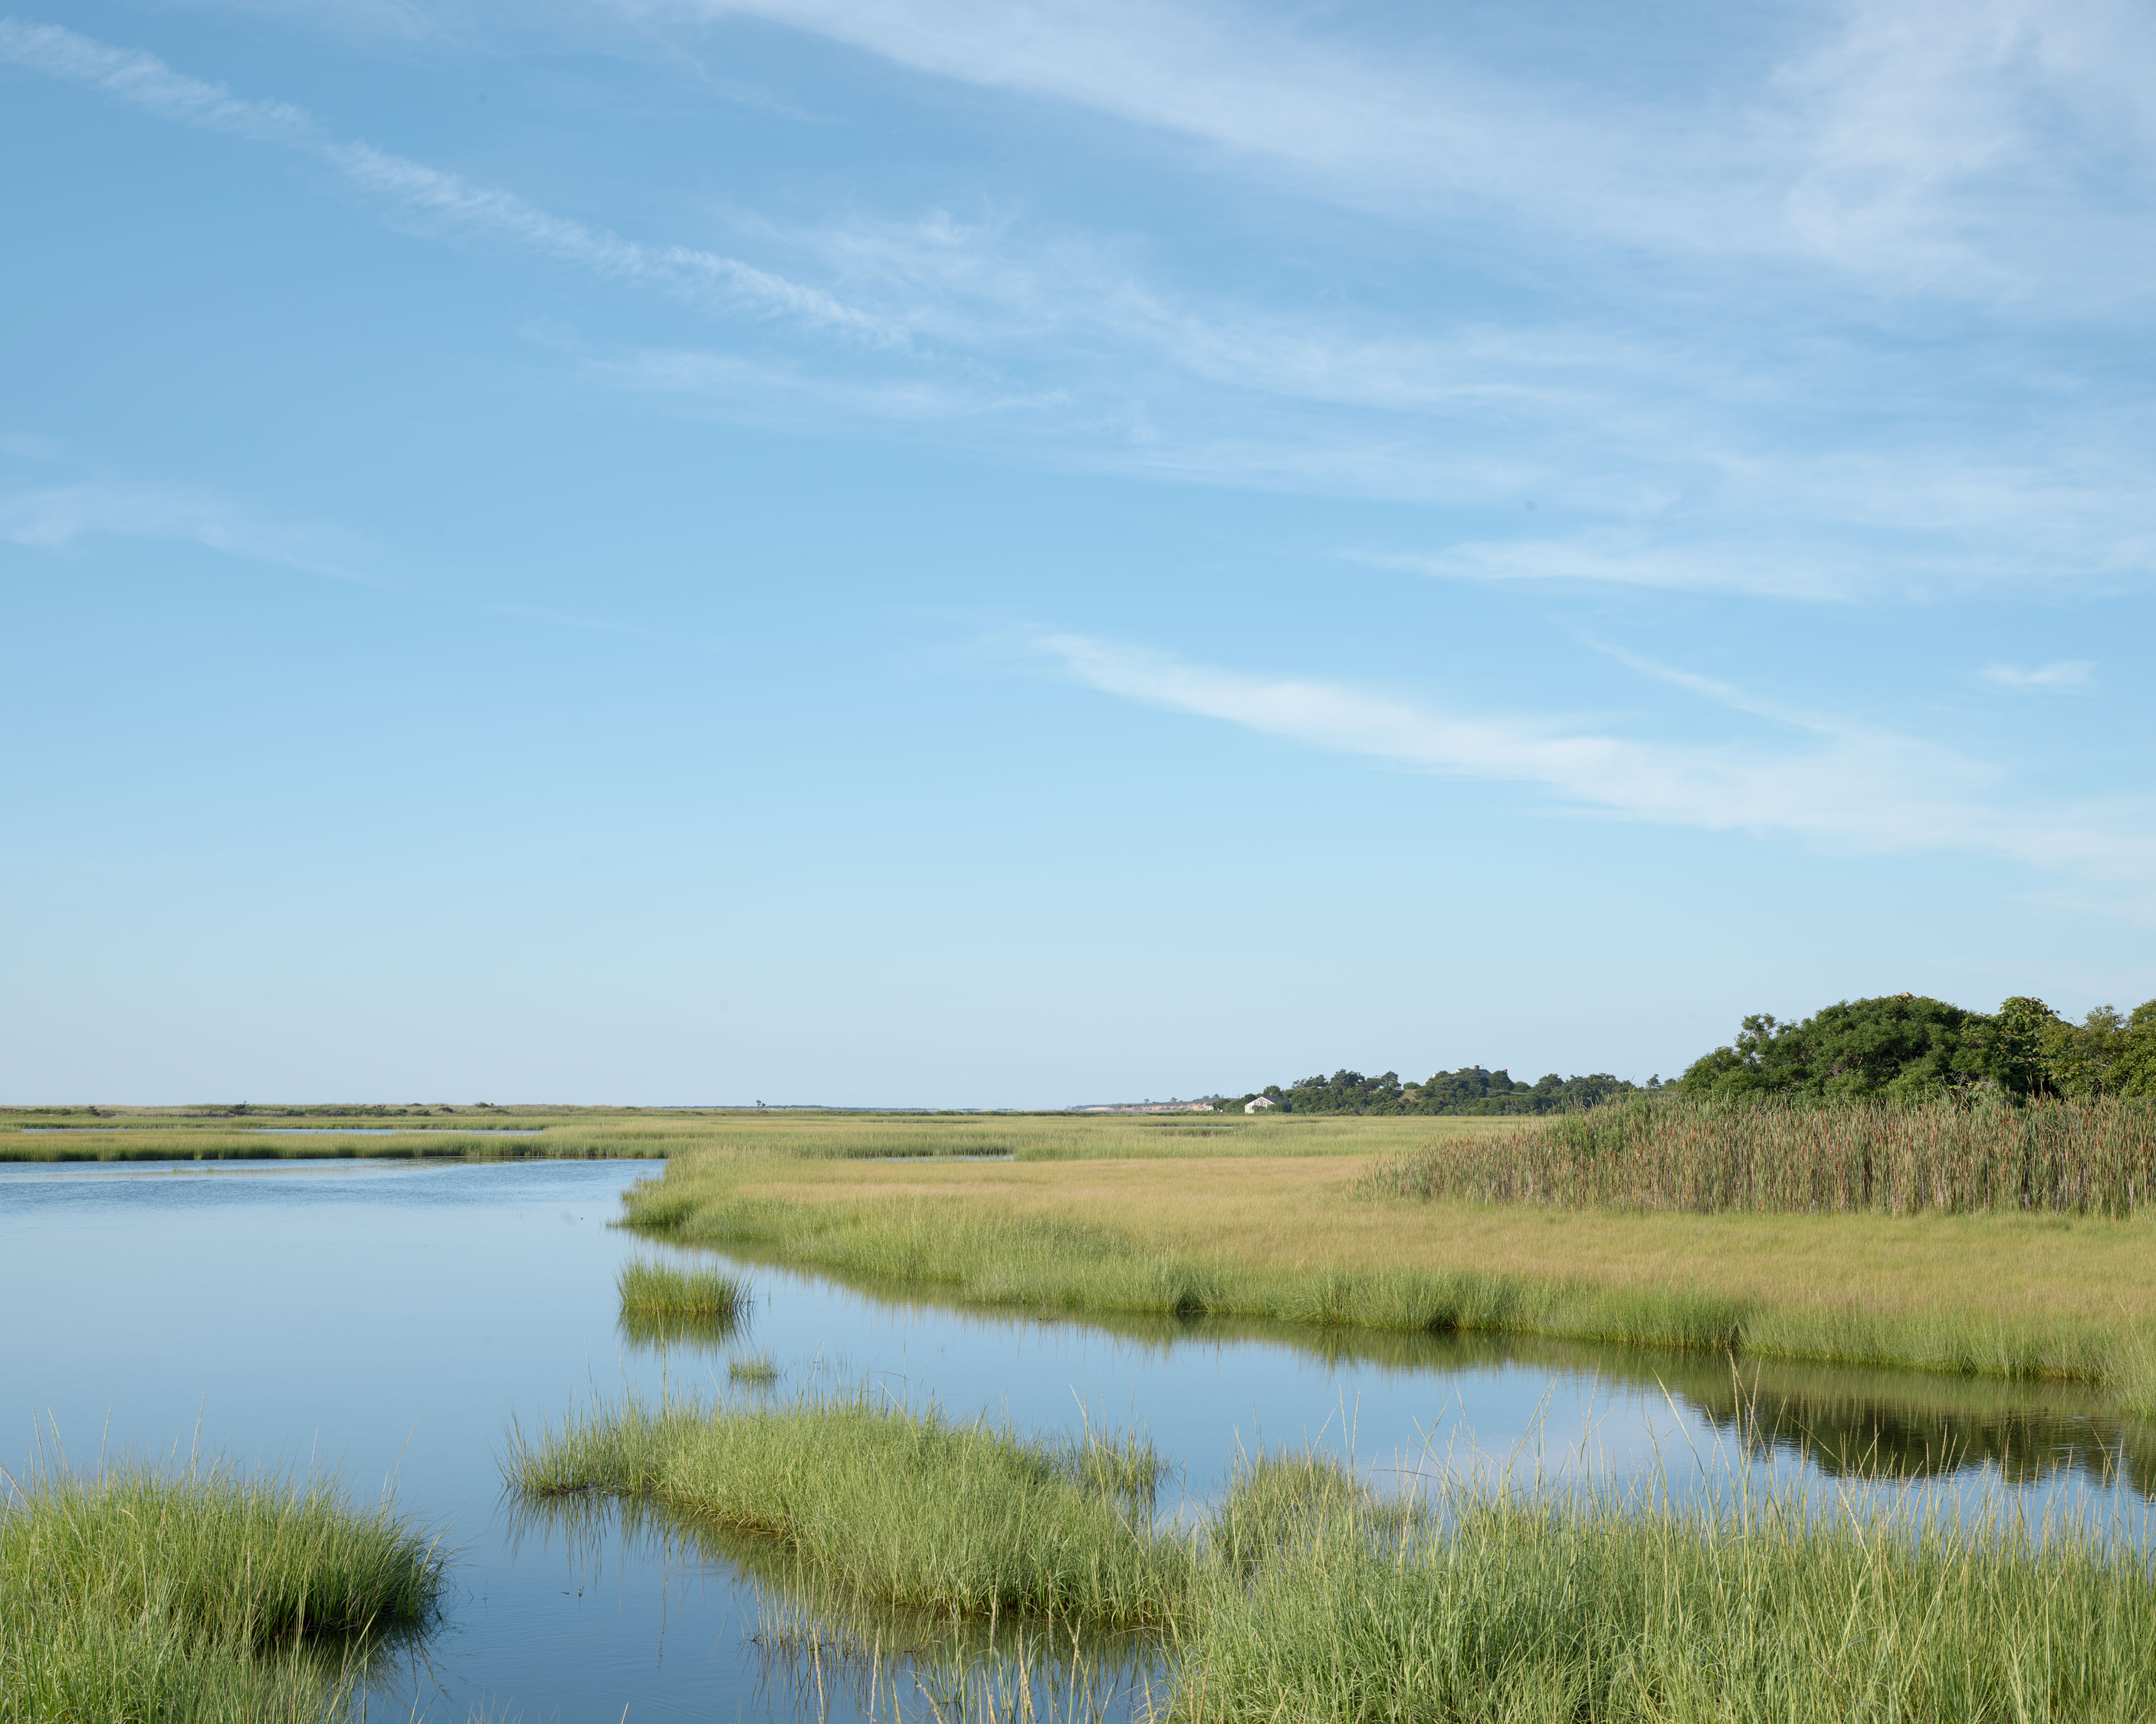 Fulling Mill #0796  |  Nantucket  |  Gaillard